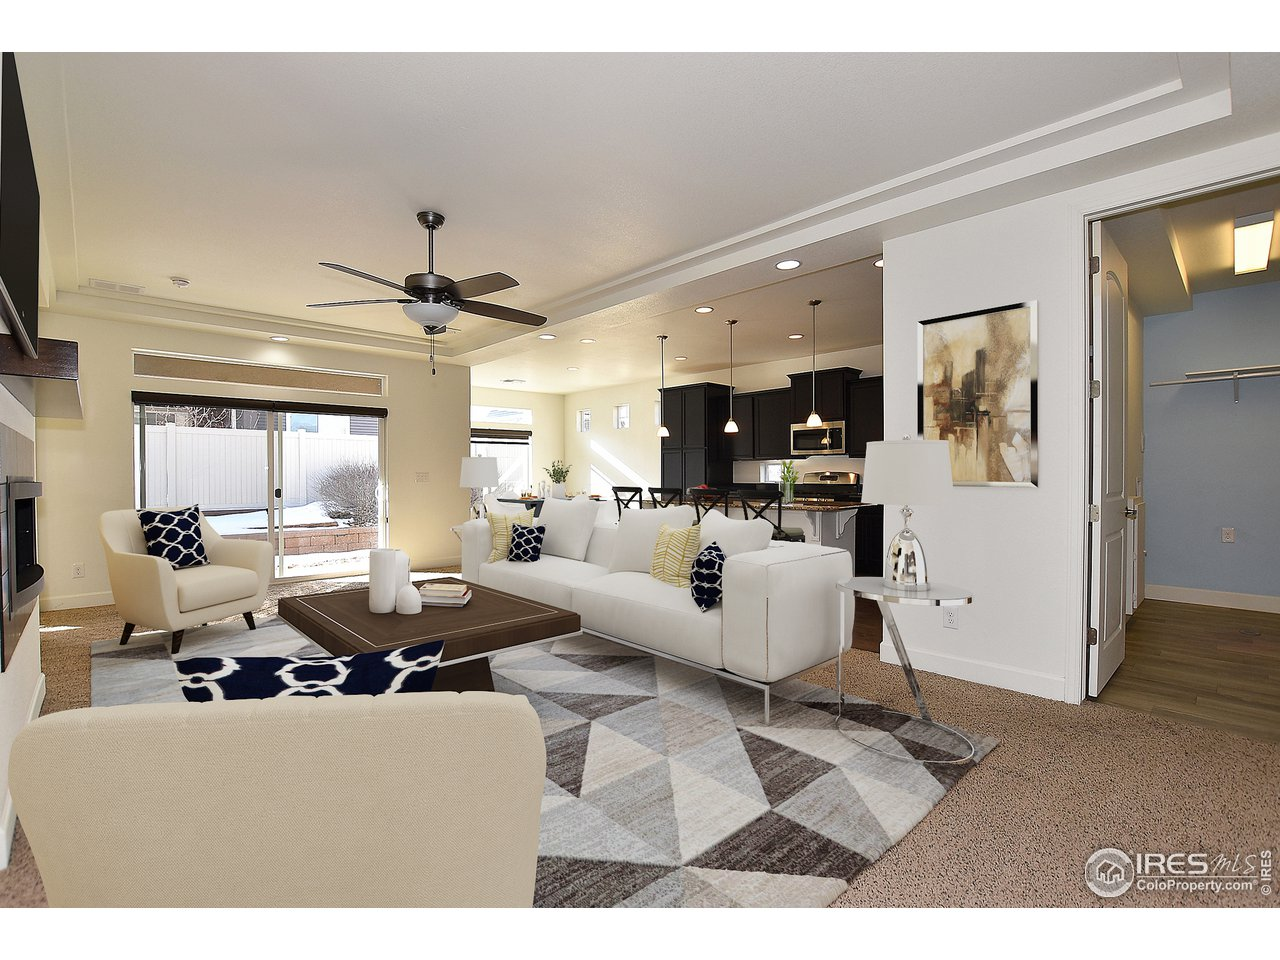 Main level and open concept living at it's finest!